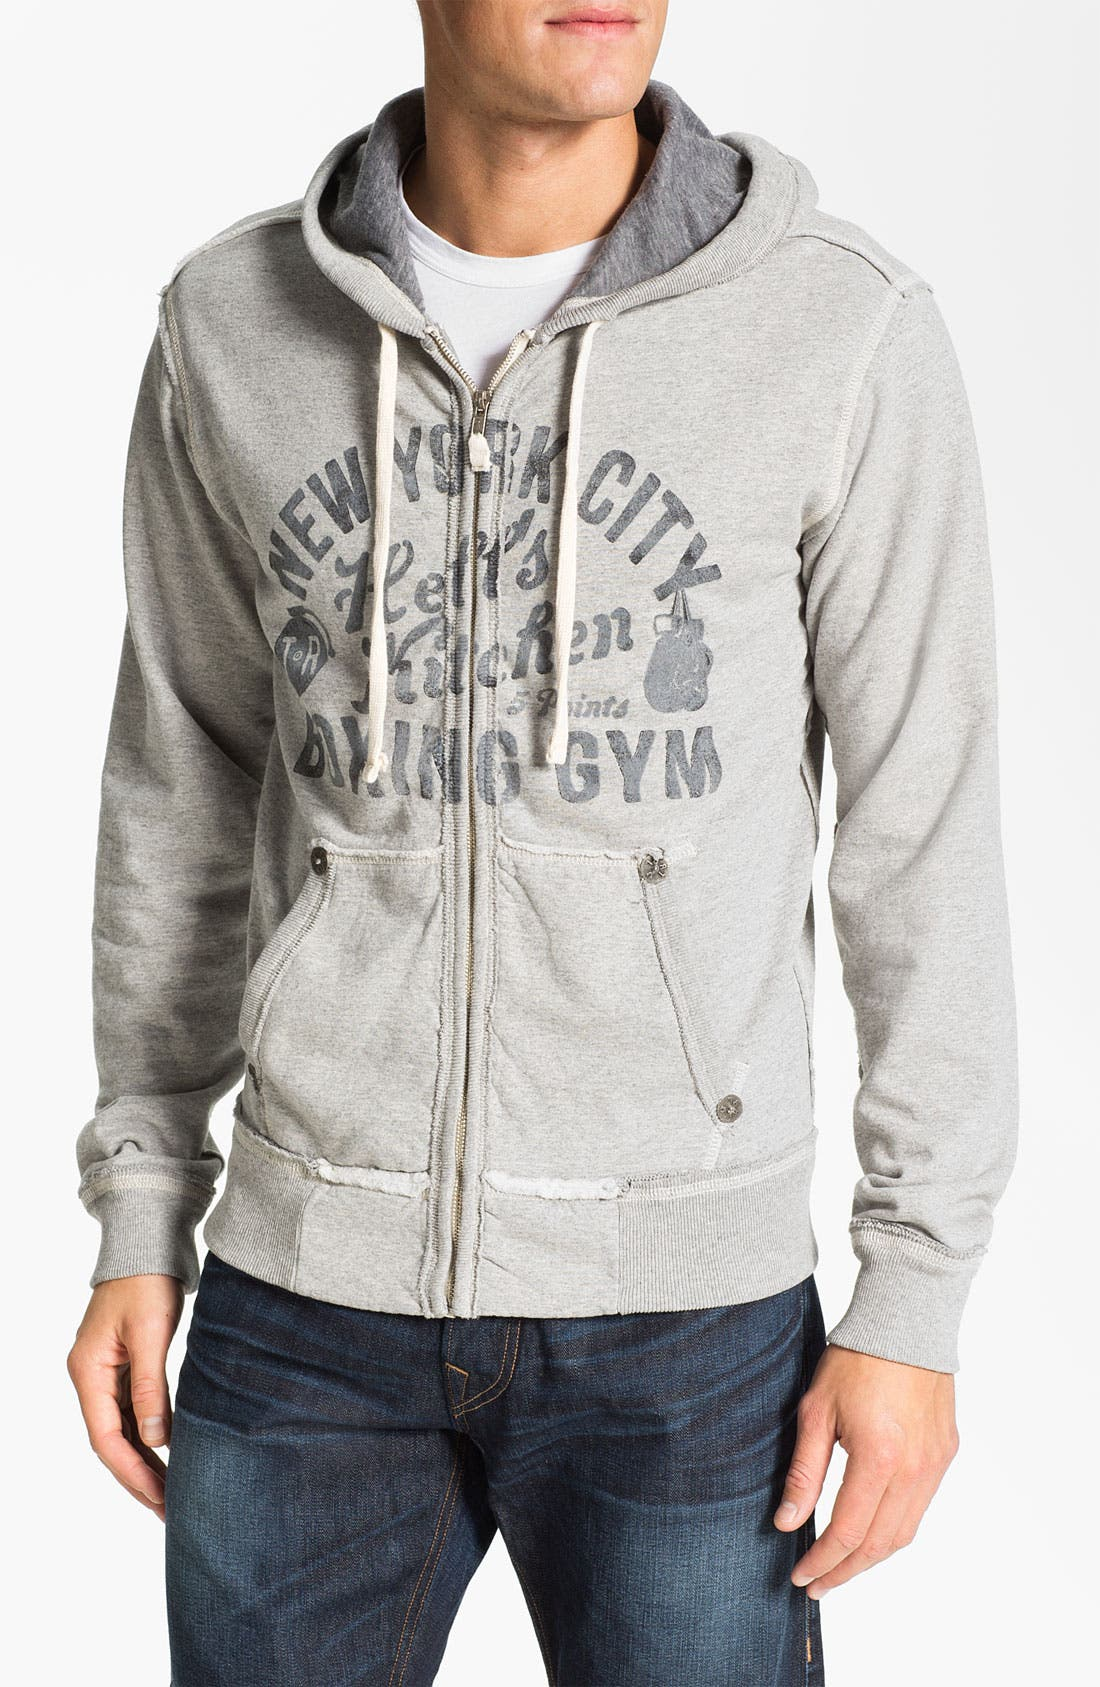 Alternate Image 1 Selected - True Religion Brand Jeans 'Hell's Kitchen' Graphic Zip Hoodie